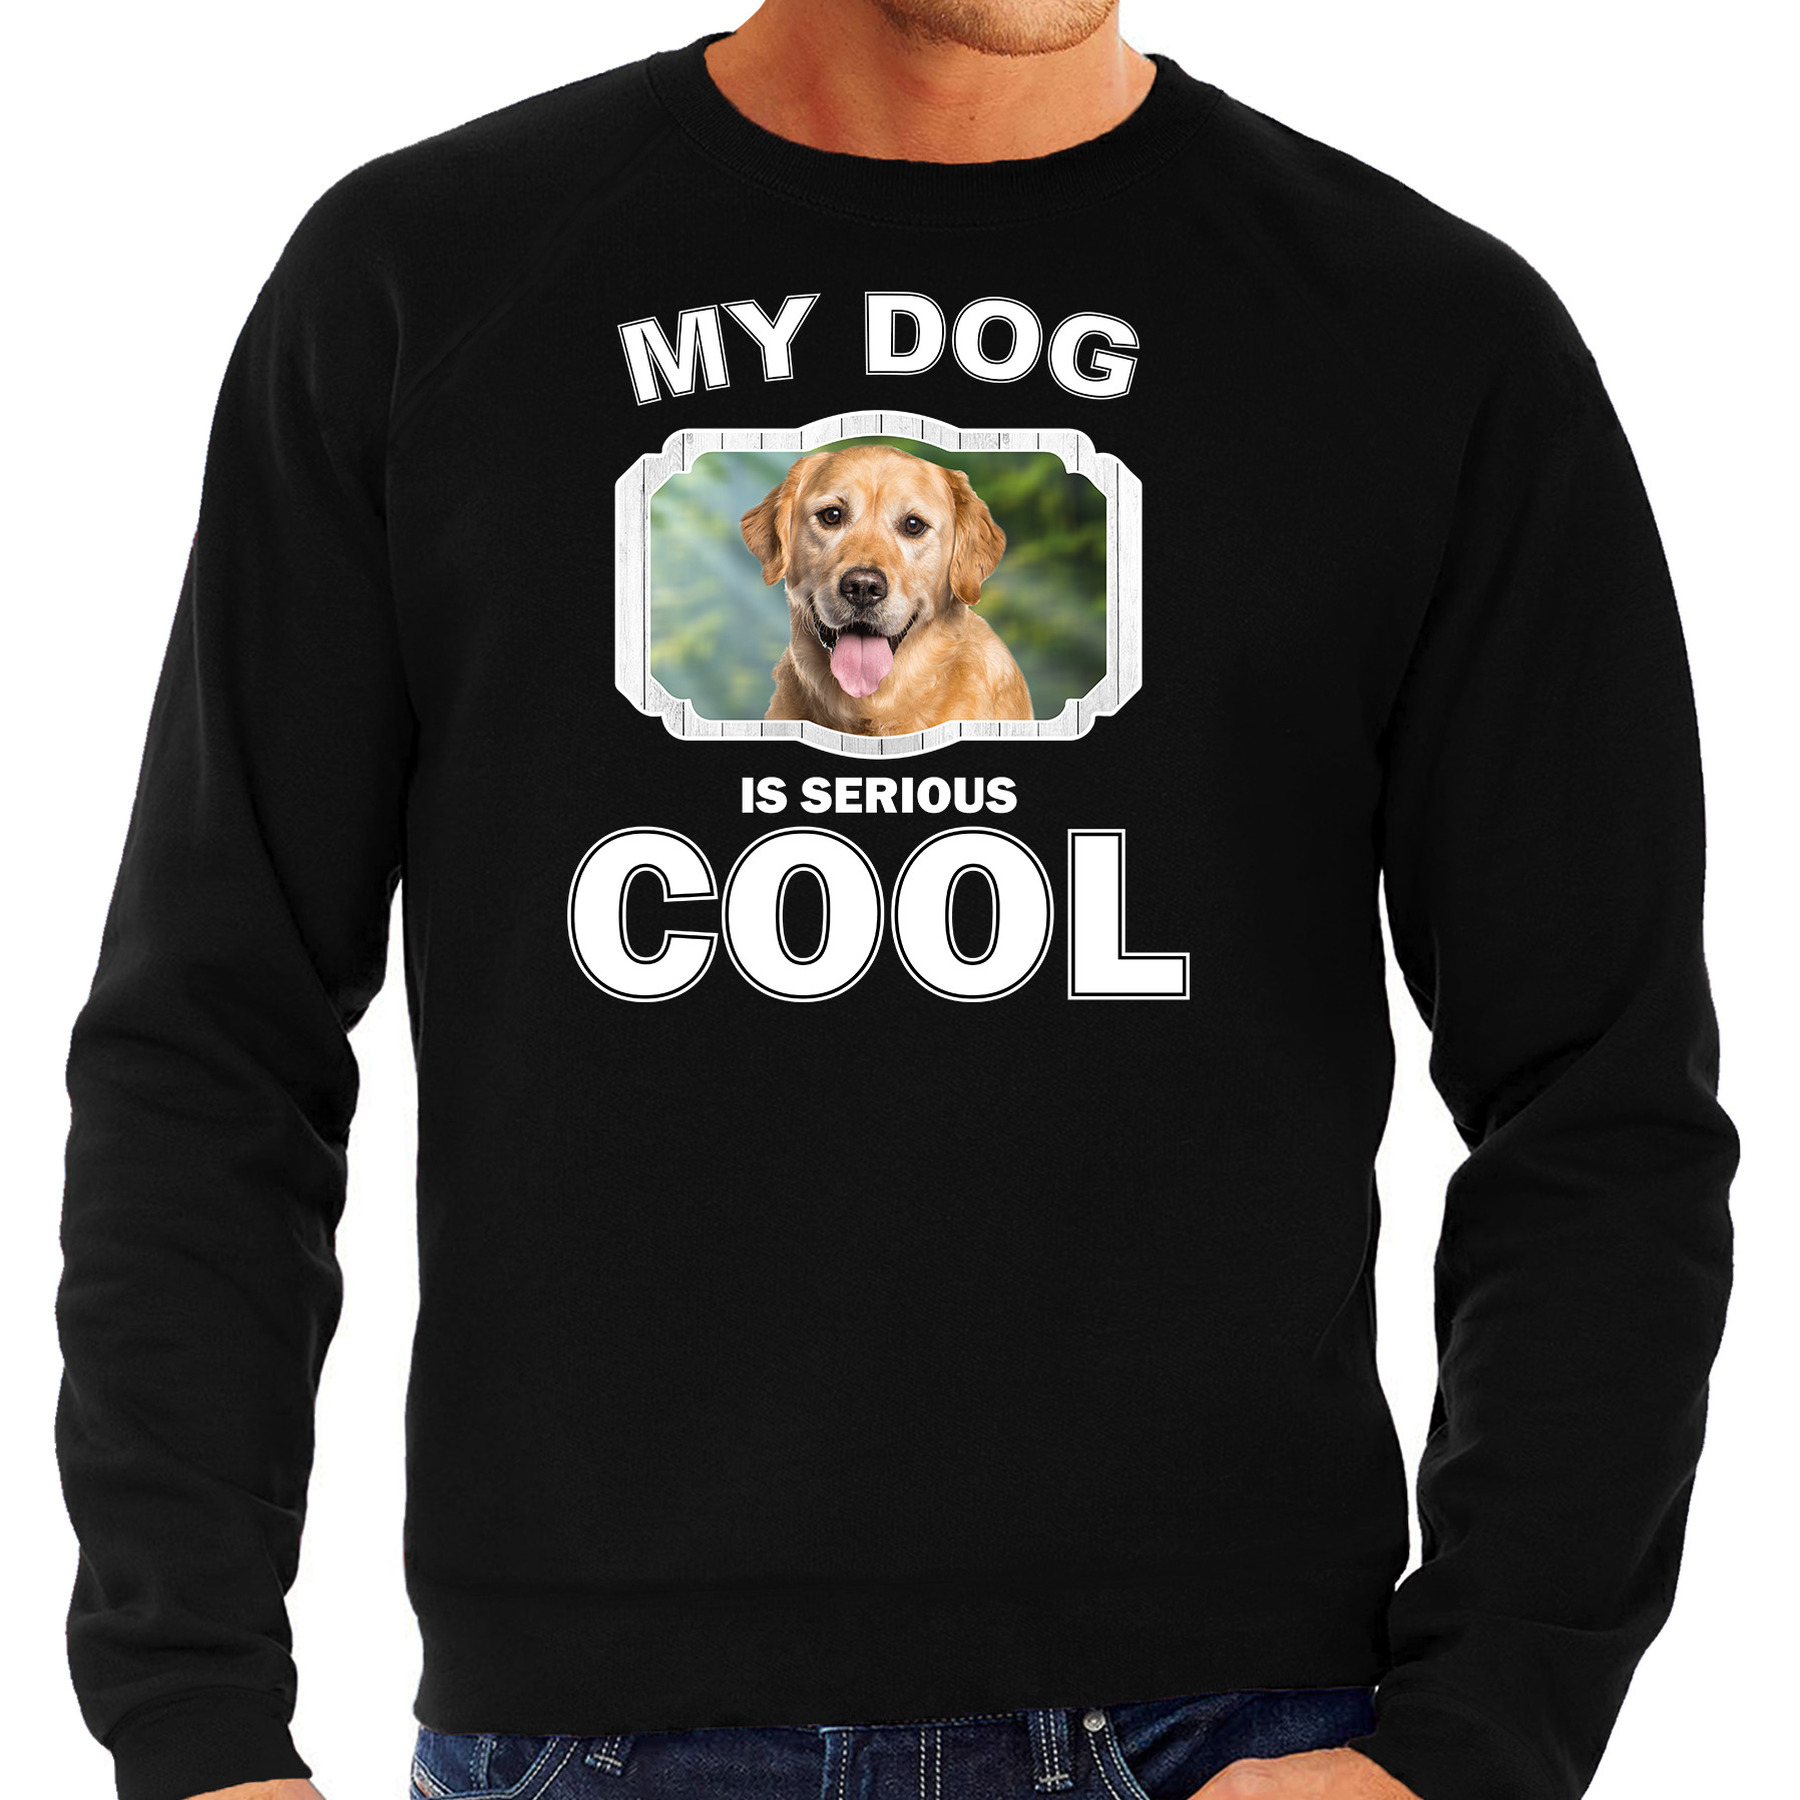 Honden liefhebber trui / sweater Golden retriever my dog is serious cool zwart voor heren